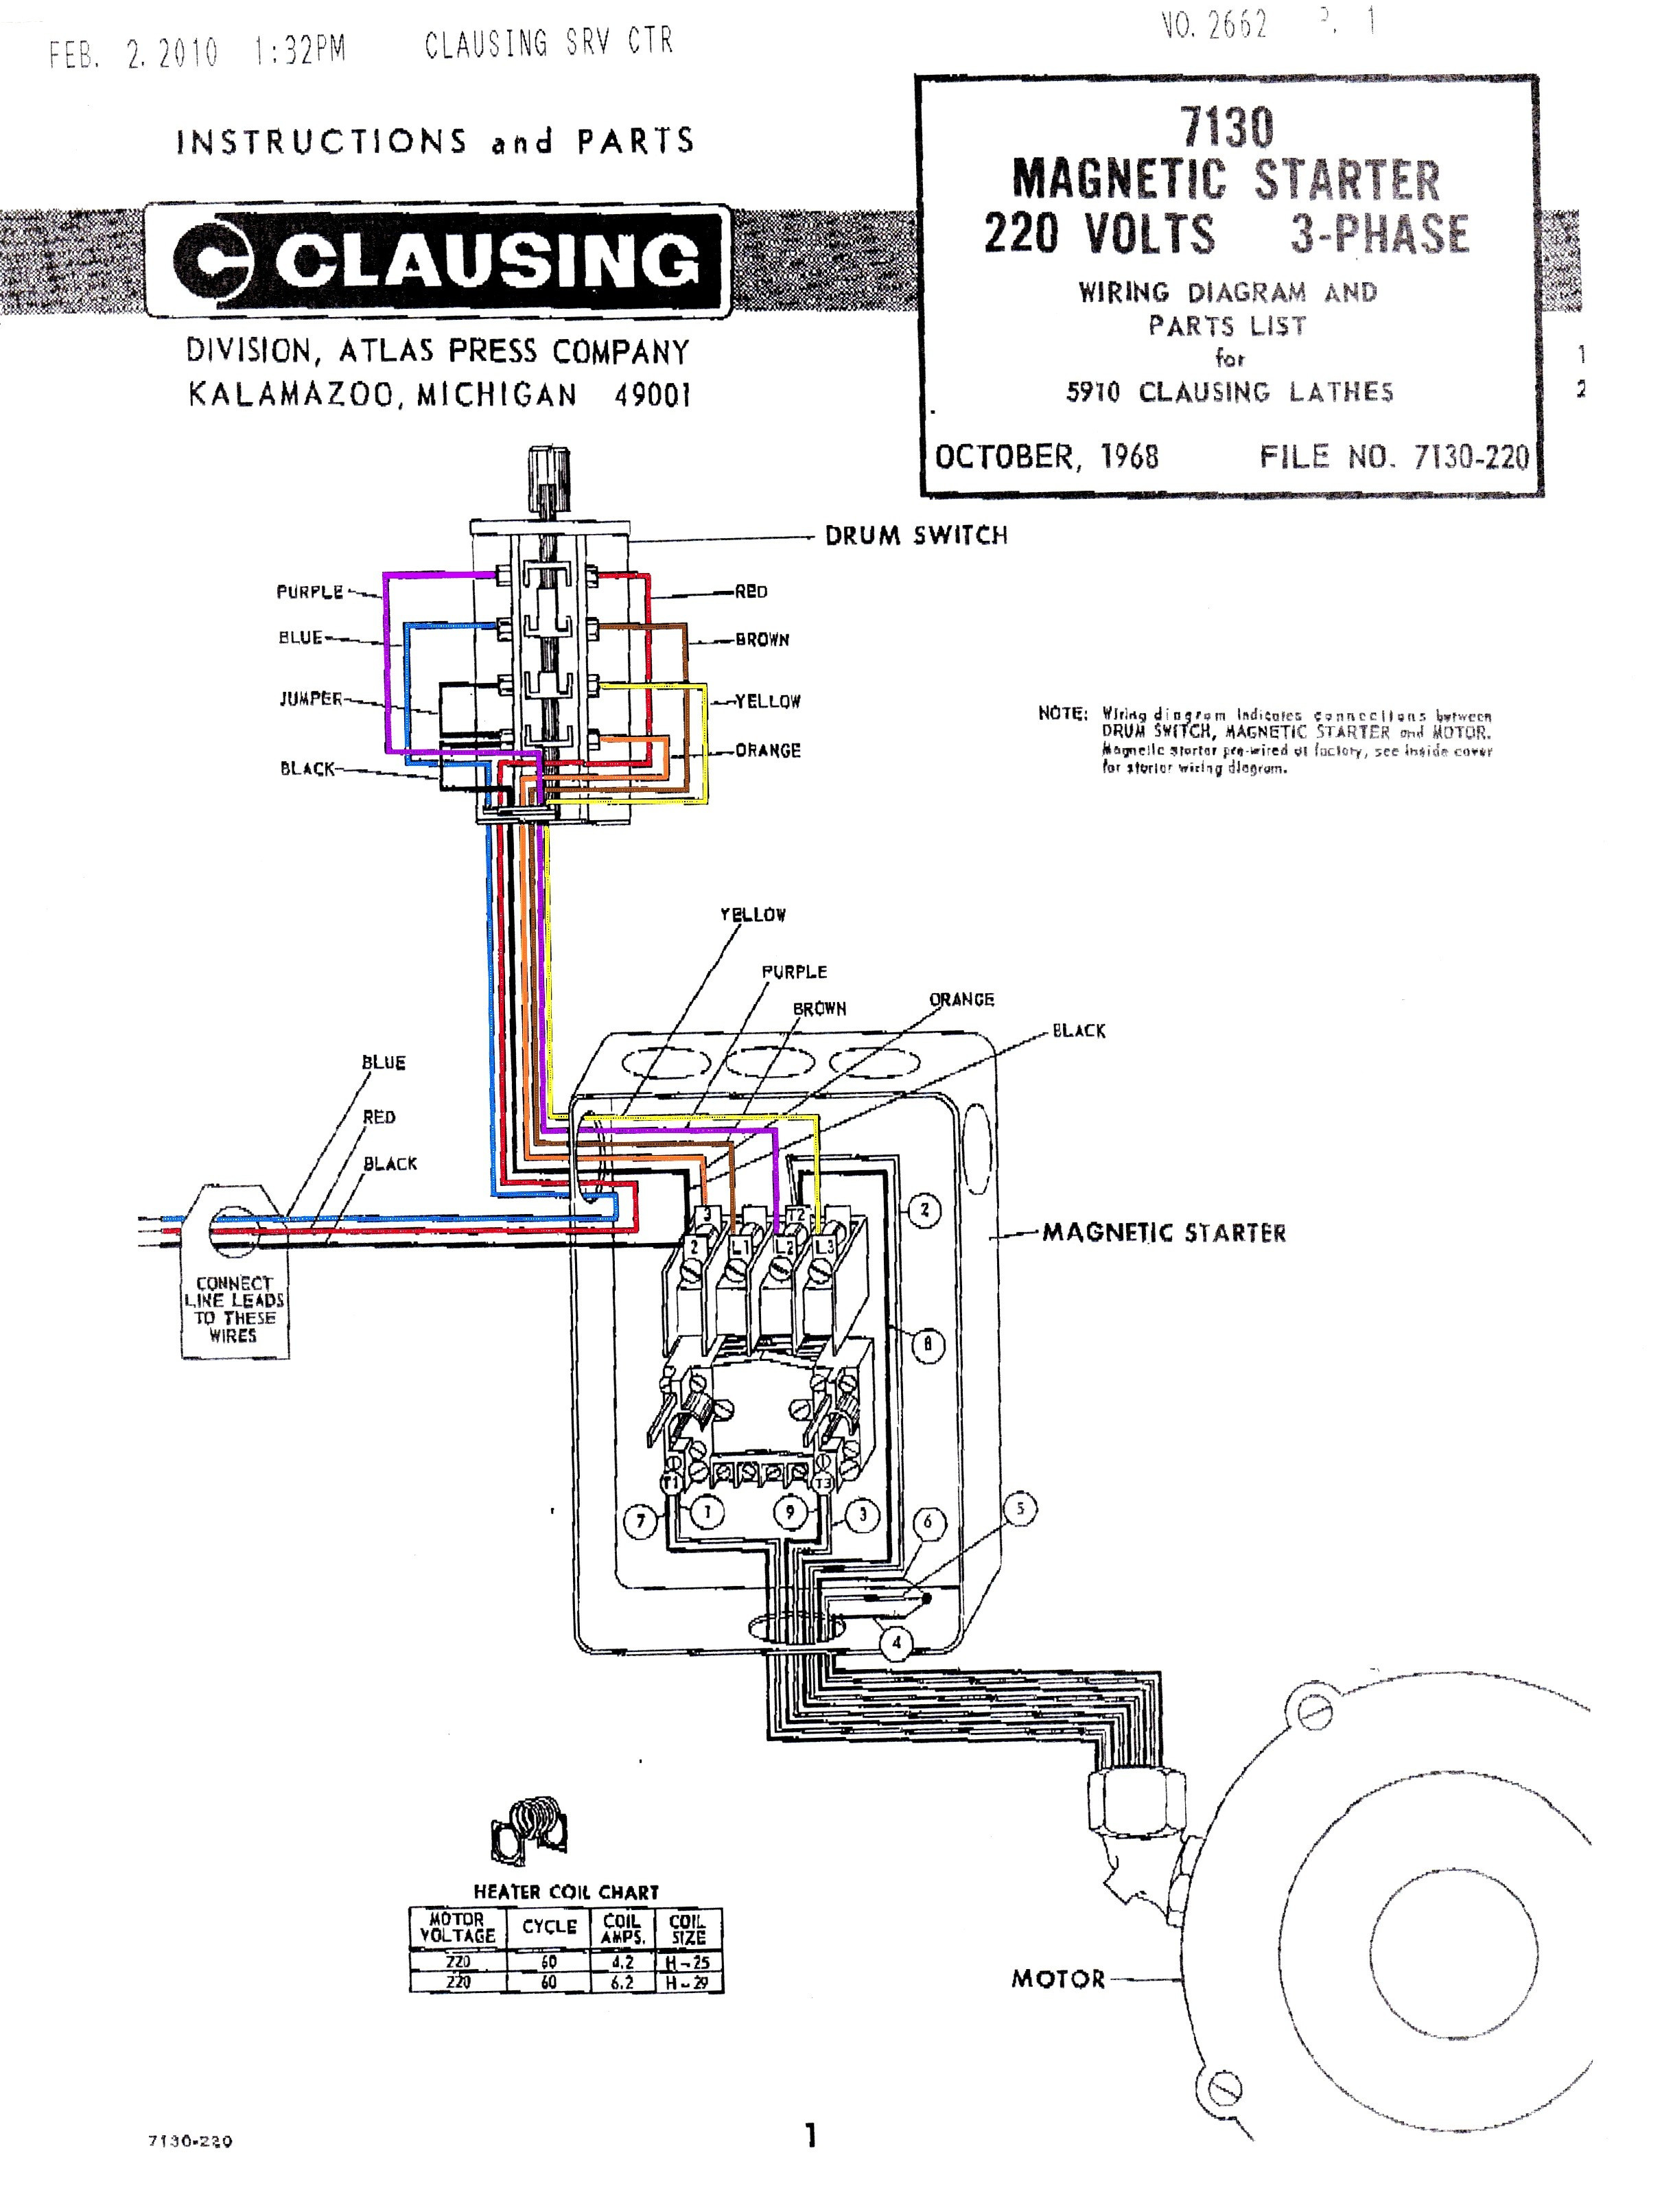 3 phase starter connection diagram woodworking  3 phase starter wiring diagram for 120v #11